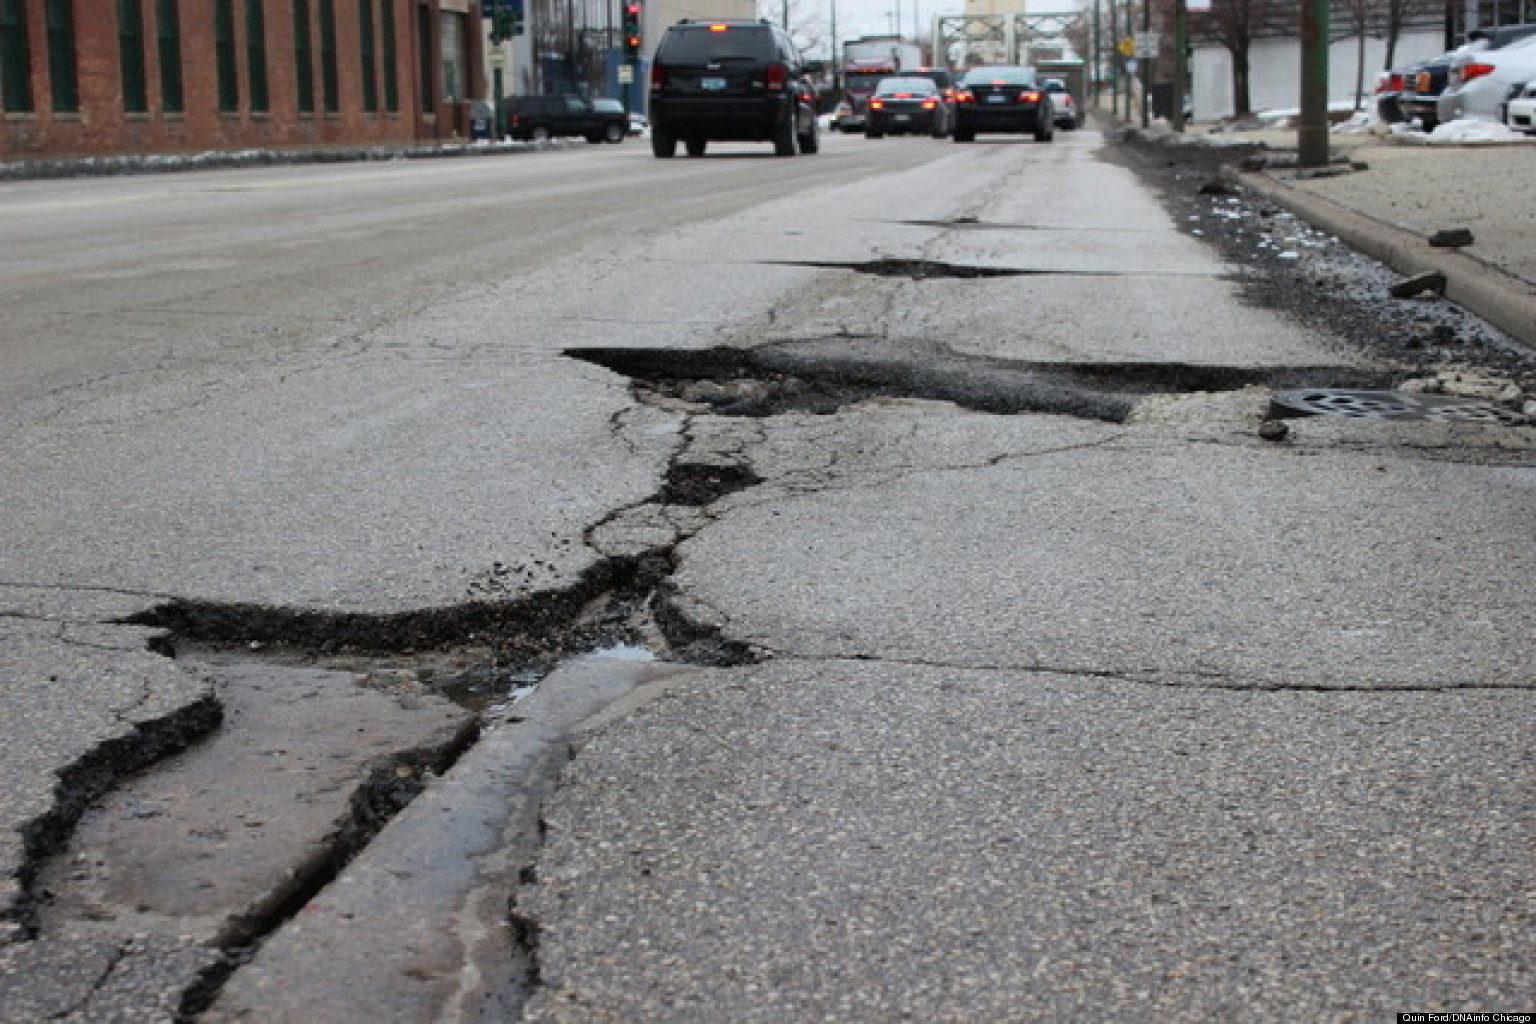 Deadly fractures on roads all around the country increase the risk of accidents